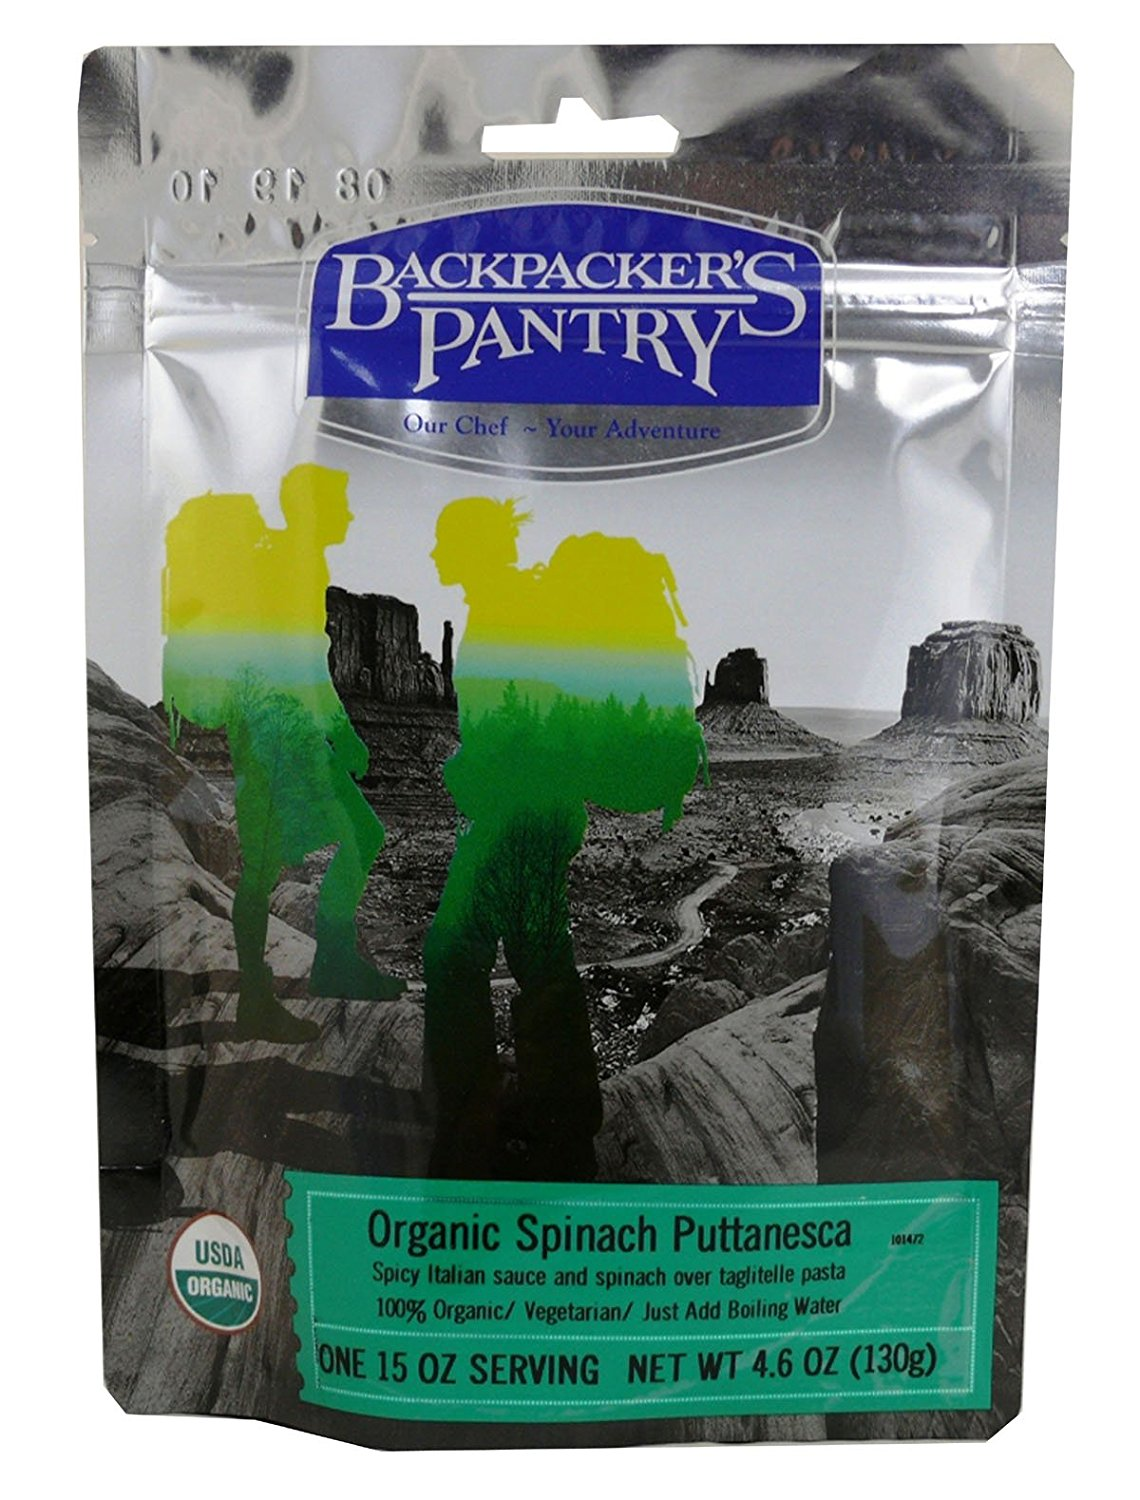 Organic Spinach Puttanesca 1 Person Meal..., By Backpacker's Pantry Ship from US by